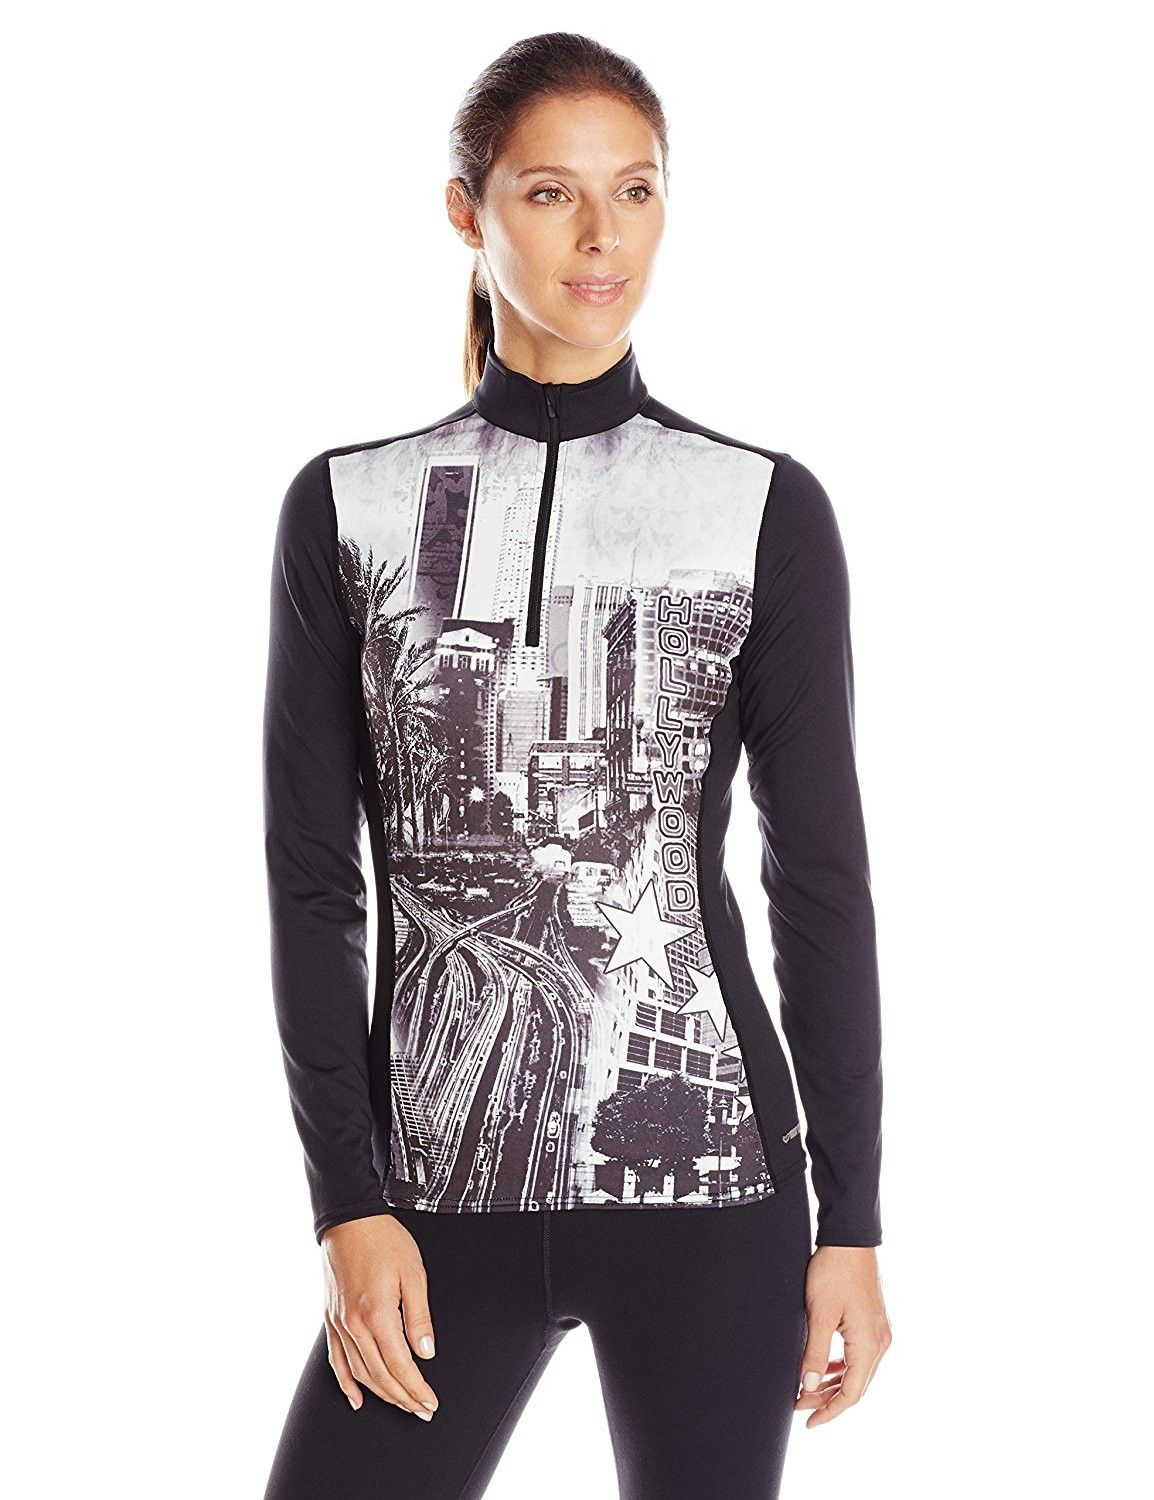 Women's Clothing, Active, Active Base Layers, Women's MEC Sub Print Zip  T-Neck Base Layer Top - Hollyw… | Women clothes sale, Clothes for women, Base  layer clothing